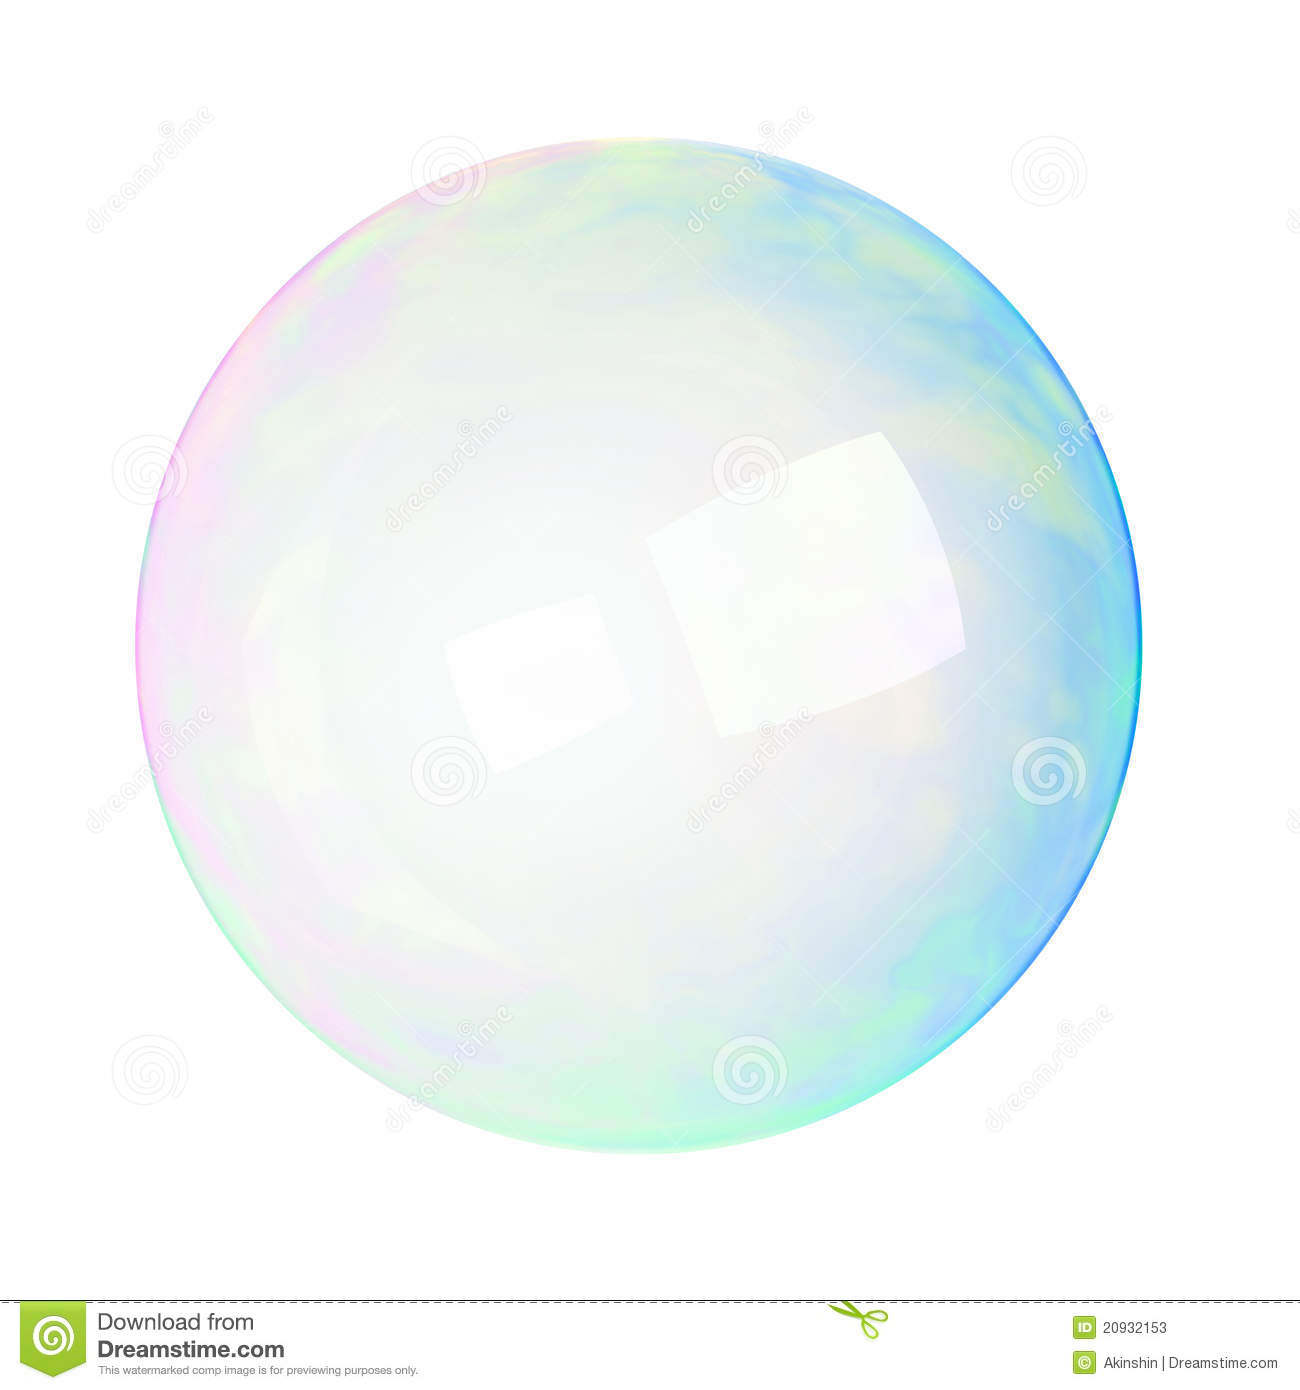 Soap bubble background download free vector art stock graphics - Royalty Free Stock Photo Background Bubble Soap